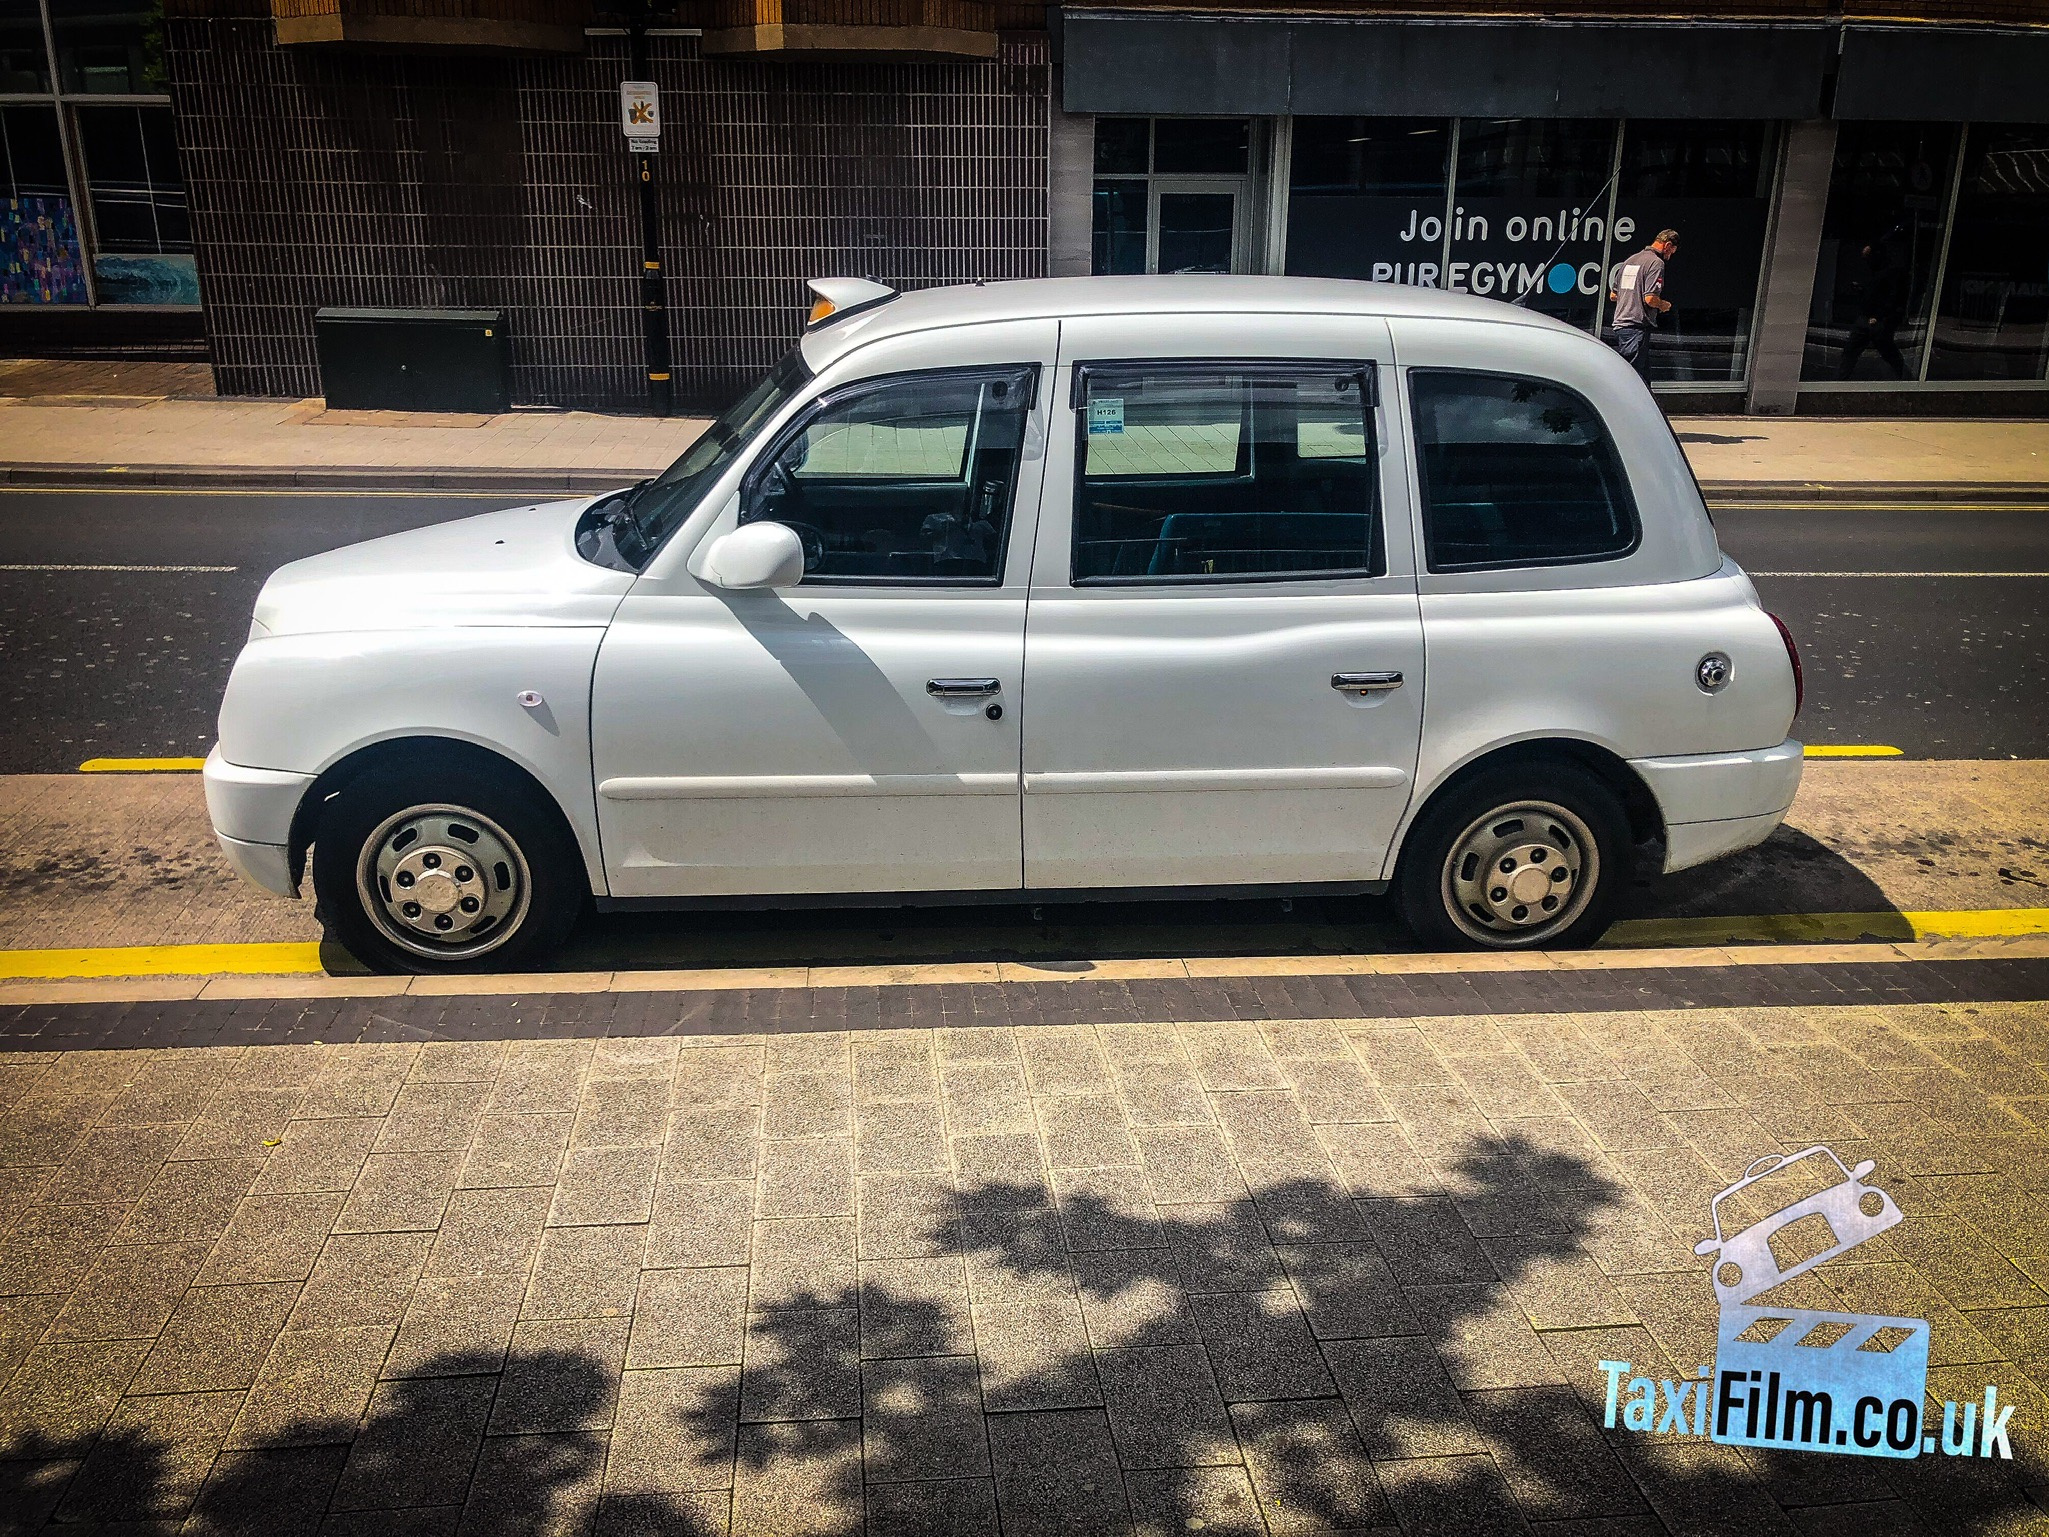 White Tx4 Taxi, ref 0007 action car